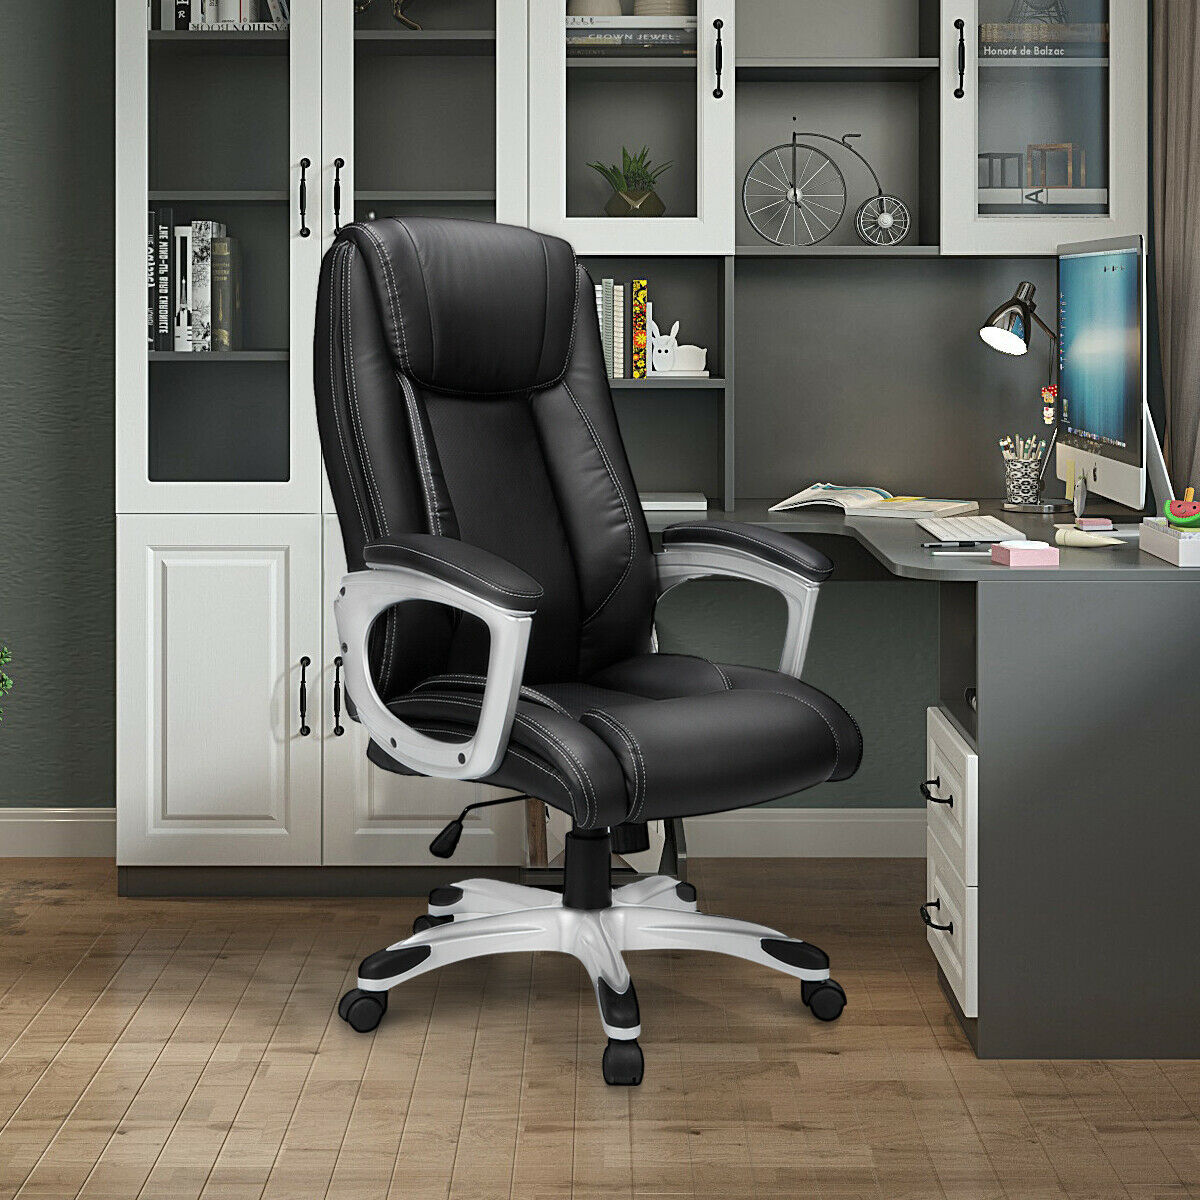 YODOLLA Leather High Back Ergonomic Office Chair Executive Swivel Computer Chair Chairs